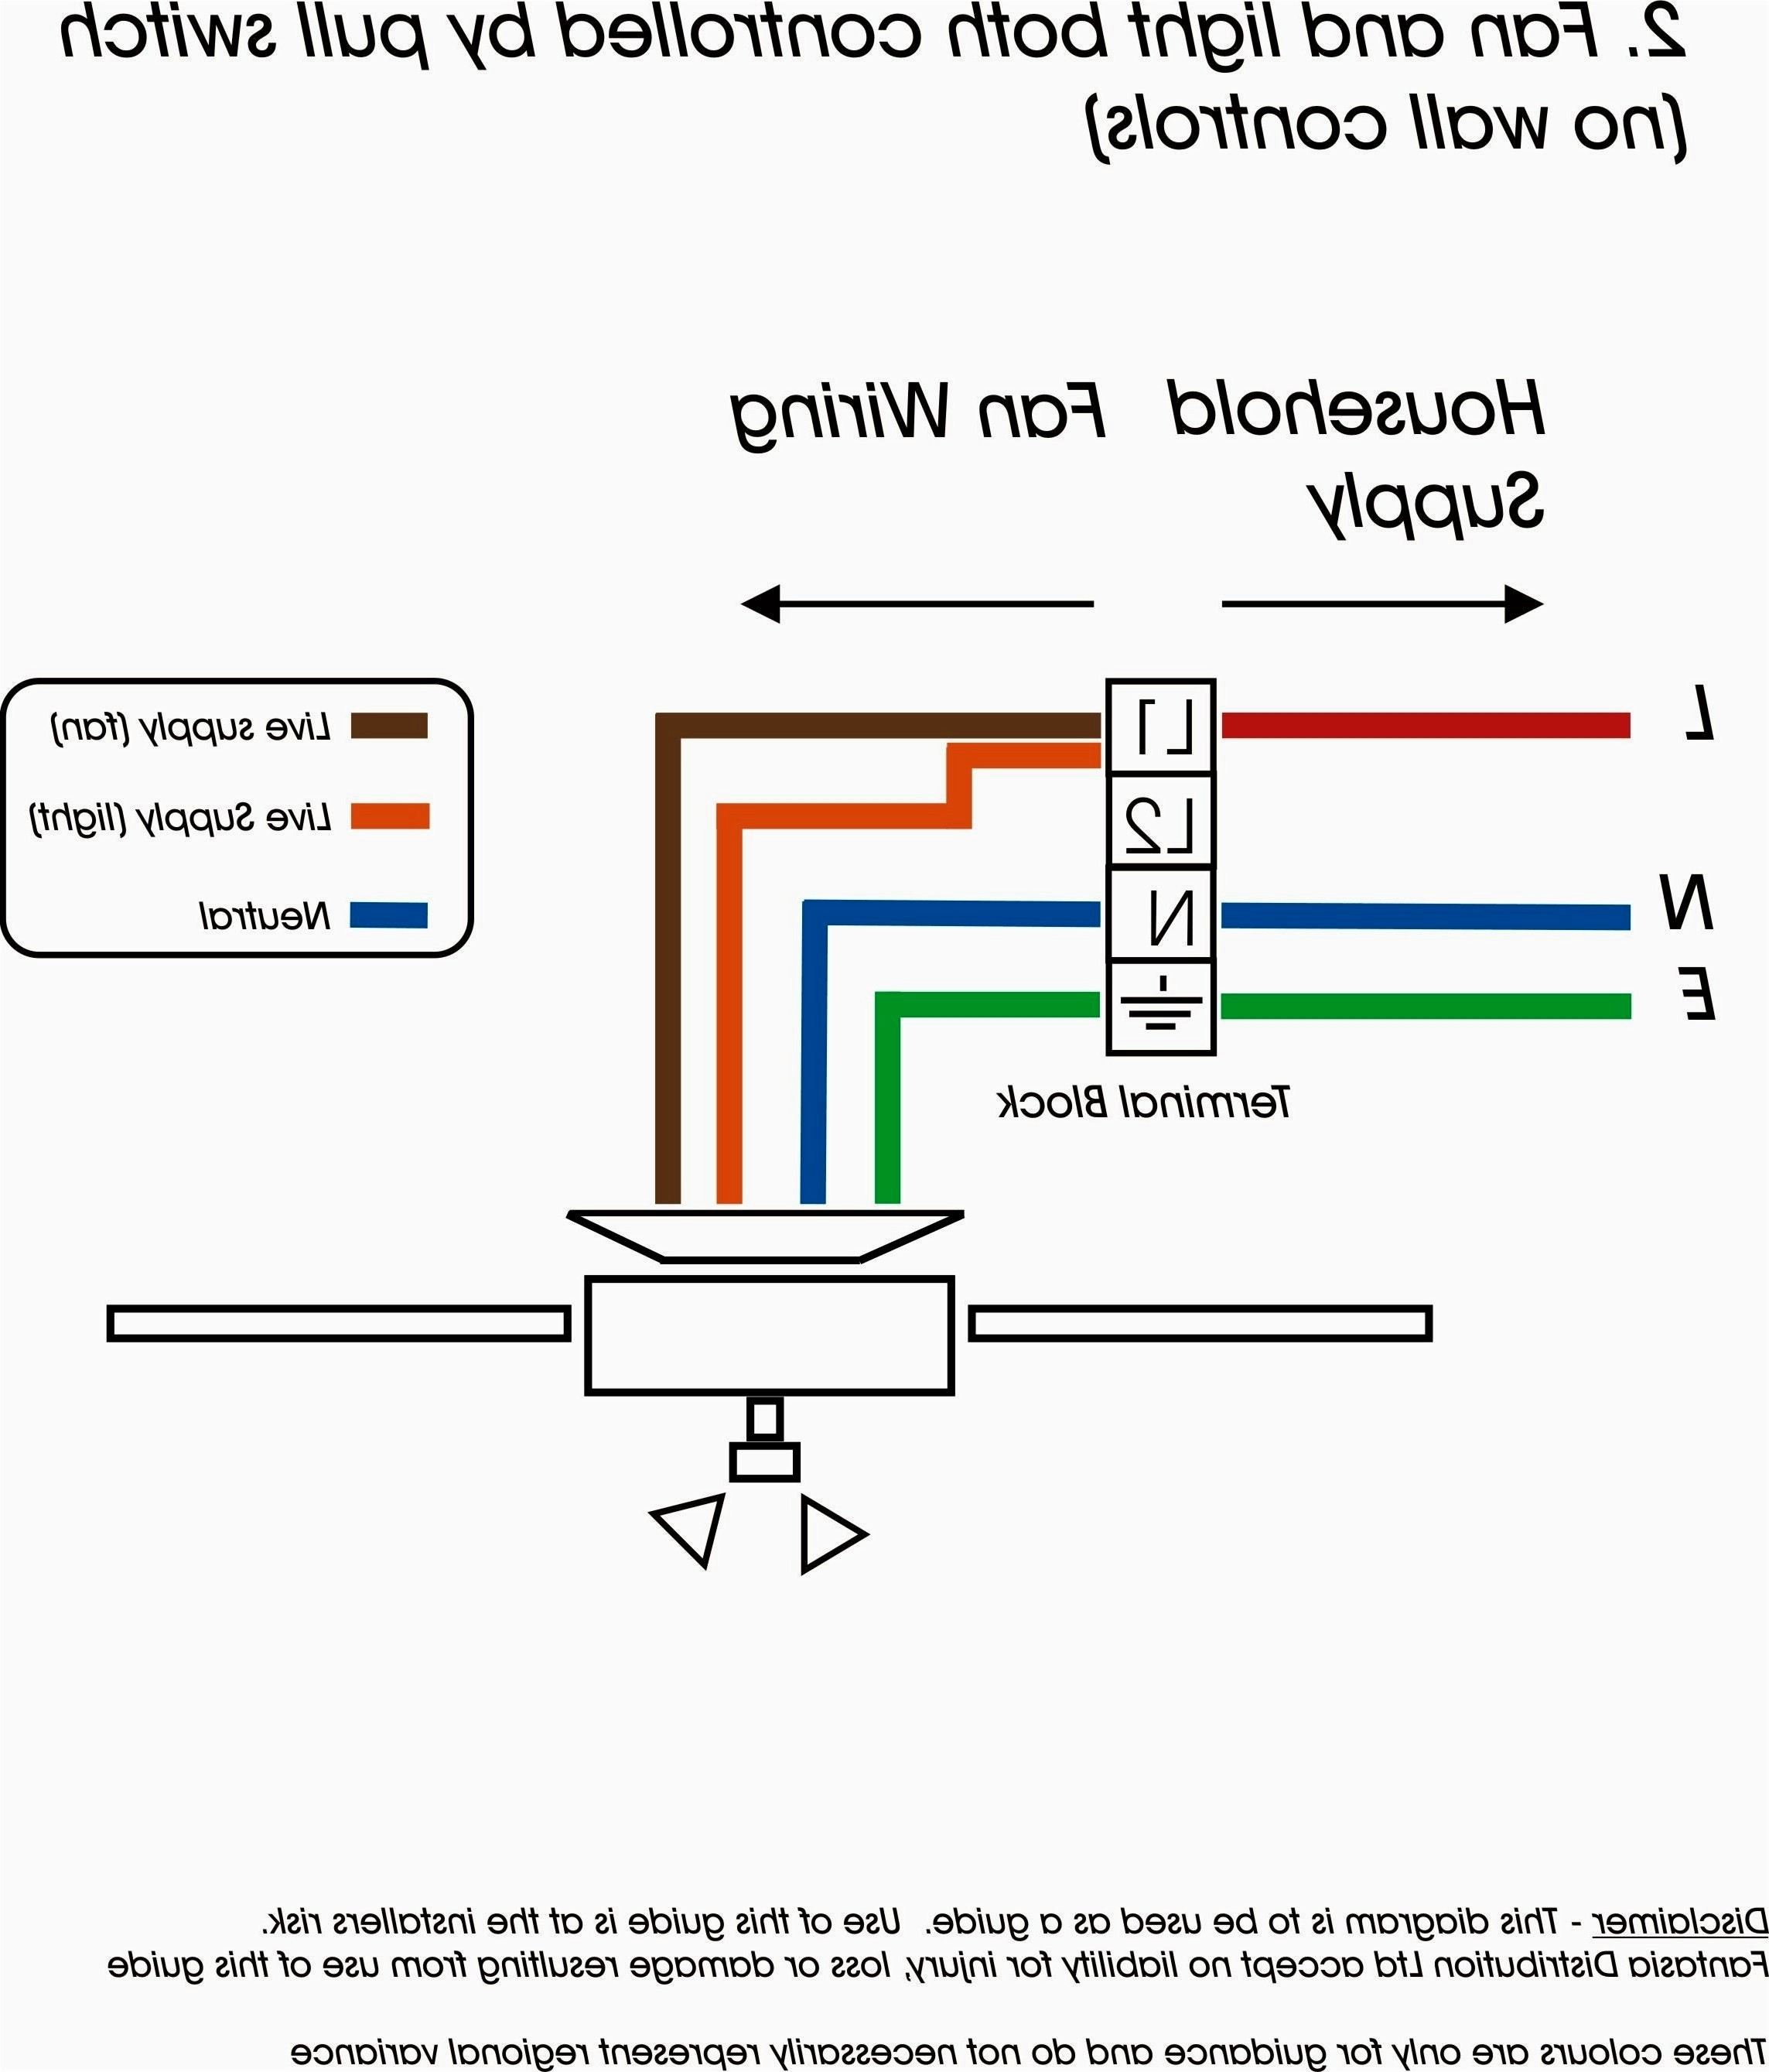 asco redhat 2 wiring diagram Download-Asco Red Hat Wiring Diagram Valid Wiring Ceiling Fan With Light Diagram For Remote And Lights Diagrams 15-s